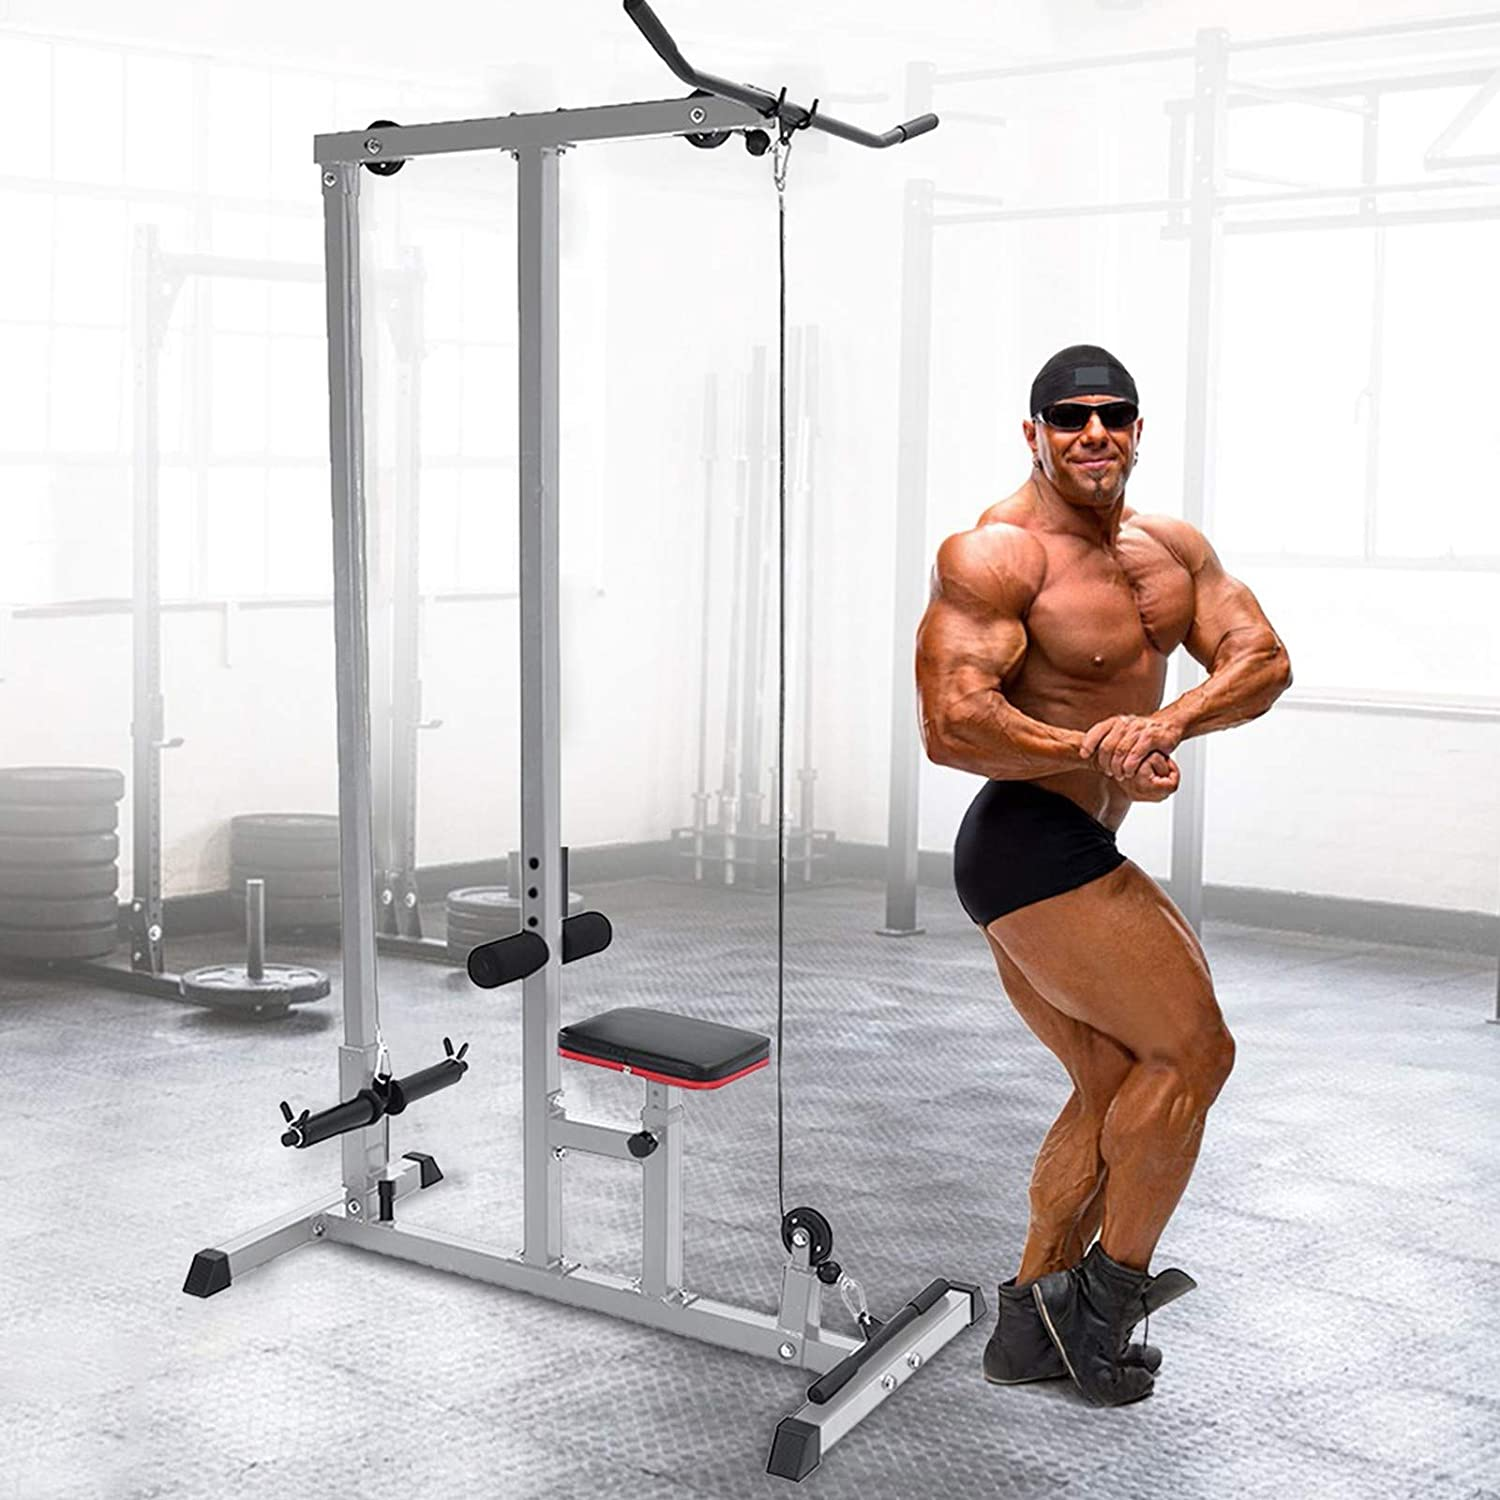 GOFULY Pull Down LAT Bar Exercise Olympic Machine for Home Low Bar Cable Fitness Training to Work The Arms /& Abs Back Shoulders